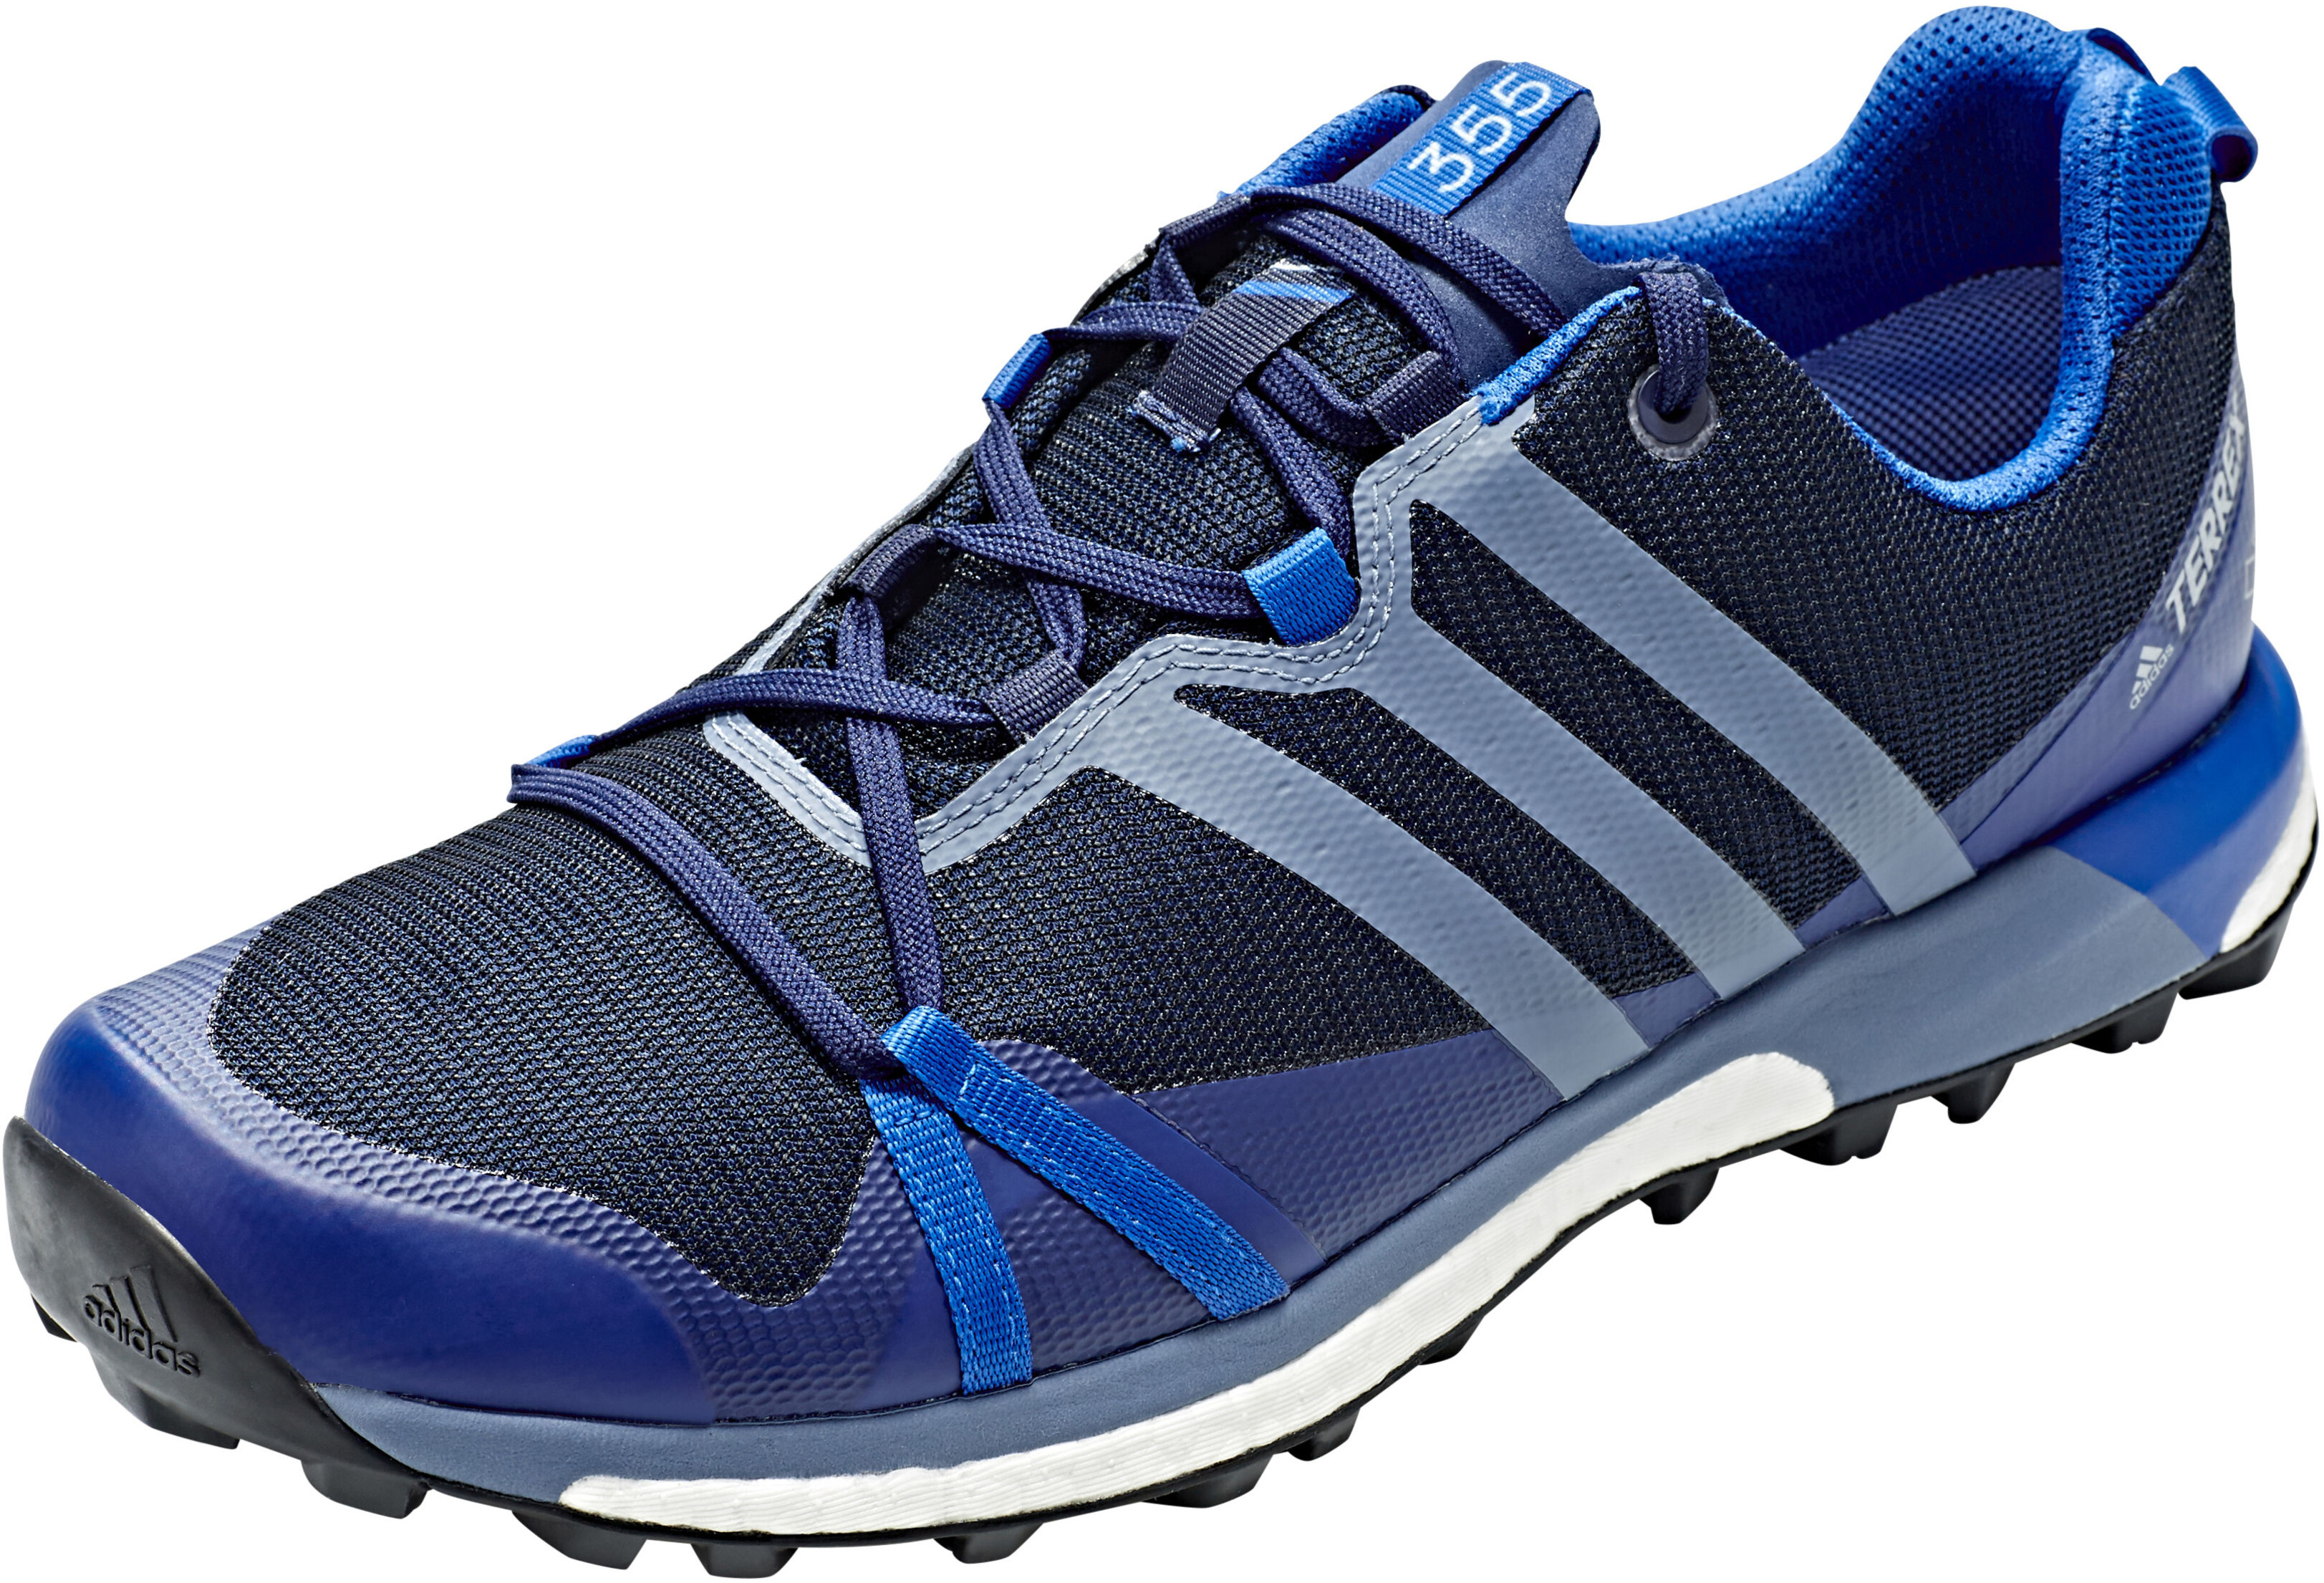 calidad autentica 60% de descuento Página web oficial adidas TERREX Agravic GTX Shoes Men collegiate navy/raw steel/blue ...